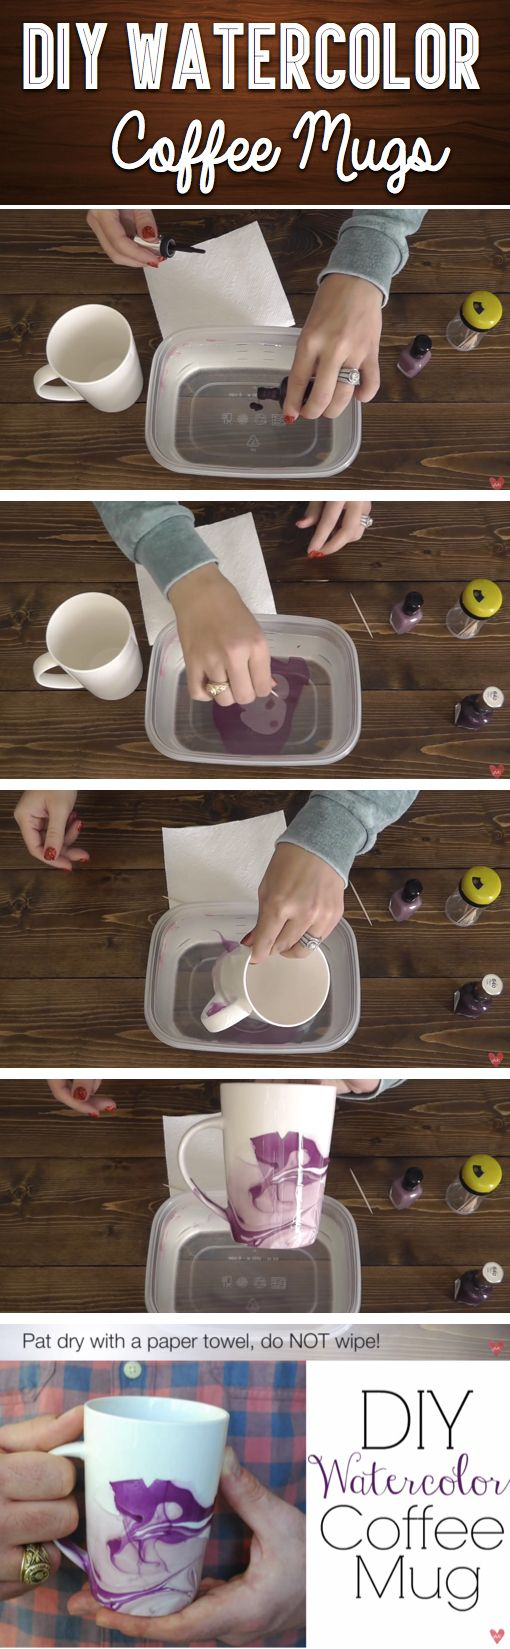 You Will Be Amazed To See What You Can Achieve With A Plain Coffee Cup And Some Nail Polish! - She Turned A Plain Mug, Nail Polish And A Toothpick Into Something Amazing!  www.wsdear.com